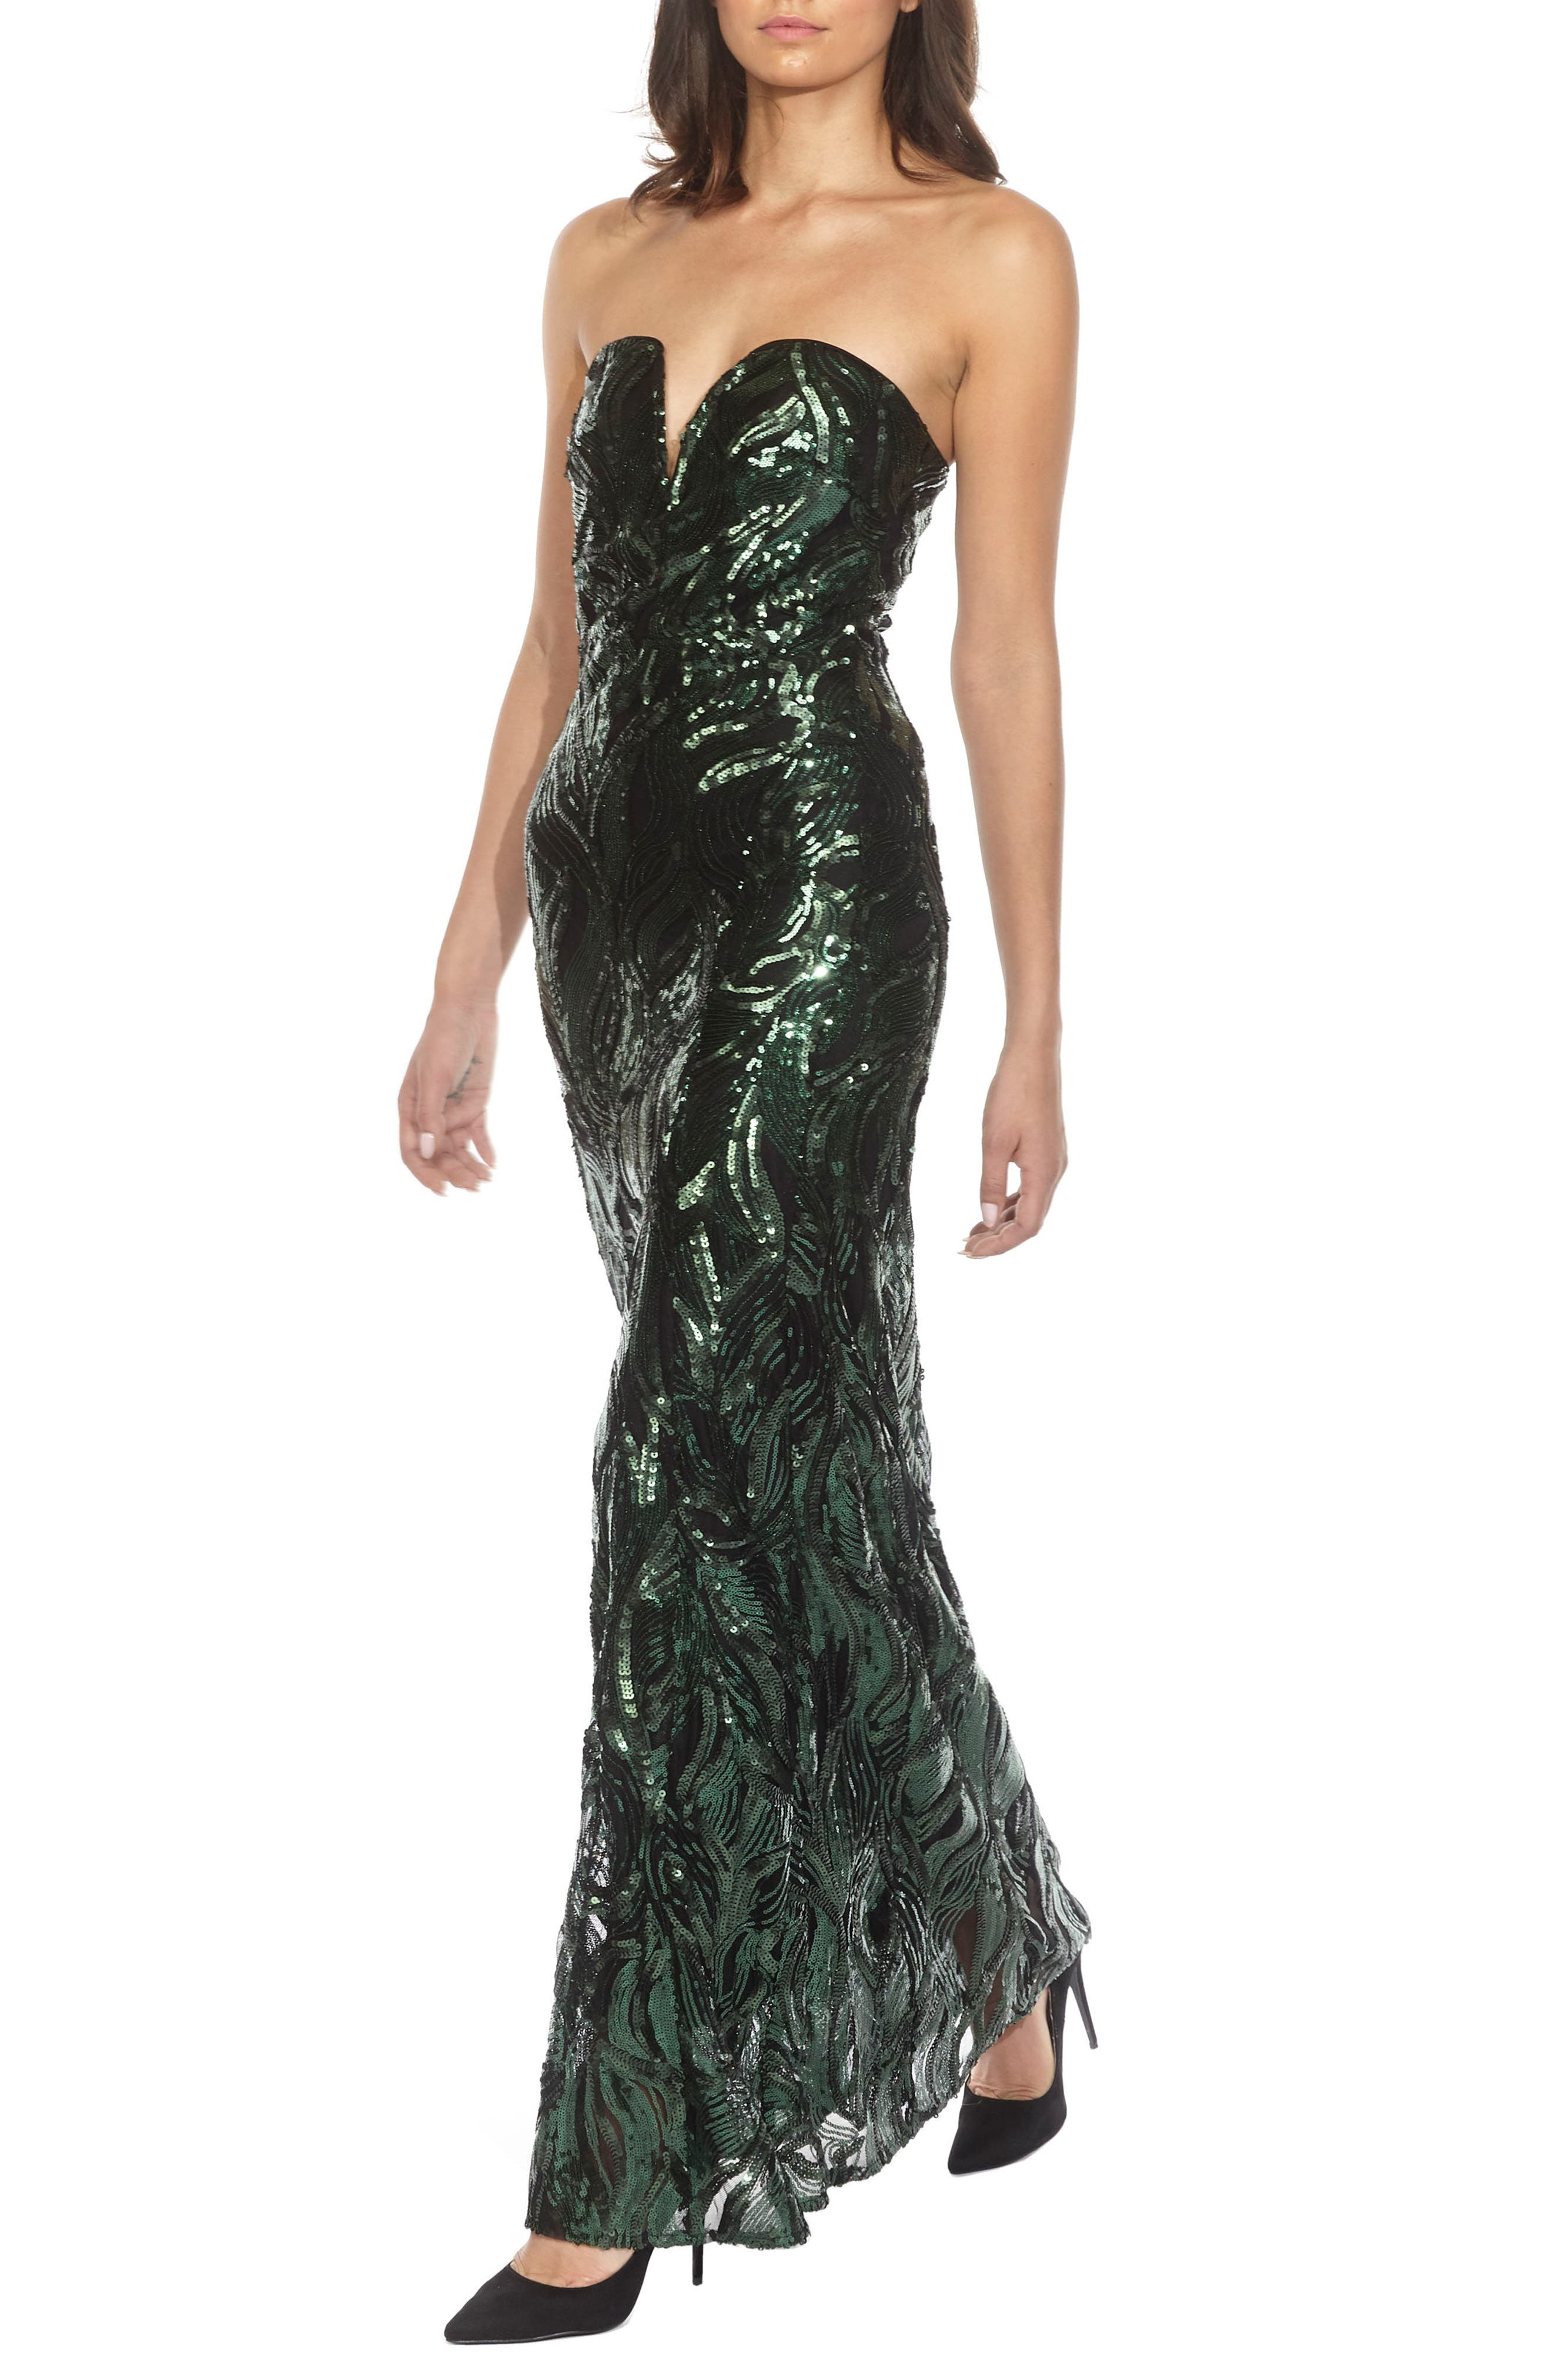 Gaynor Sequin Strapless Maxi Dress,                             Alternate thumbnail 3, color,                             310